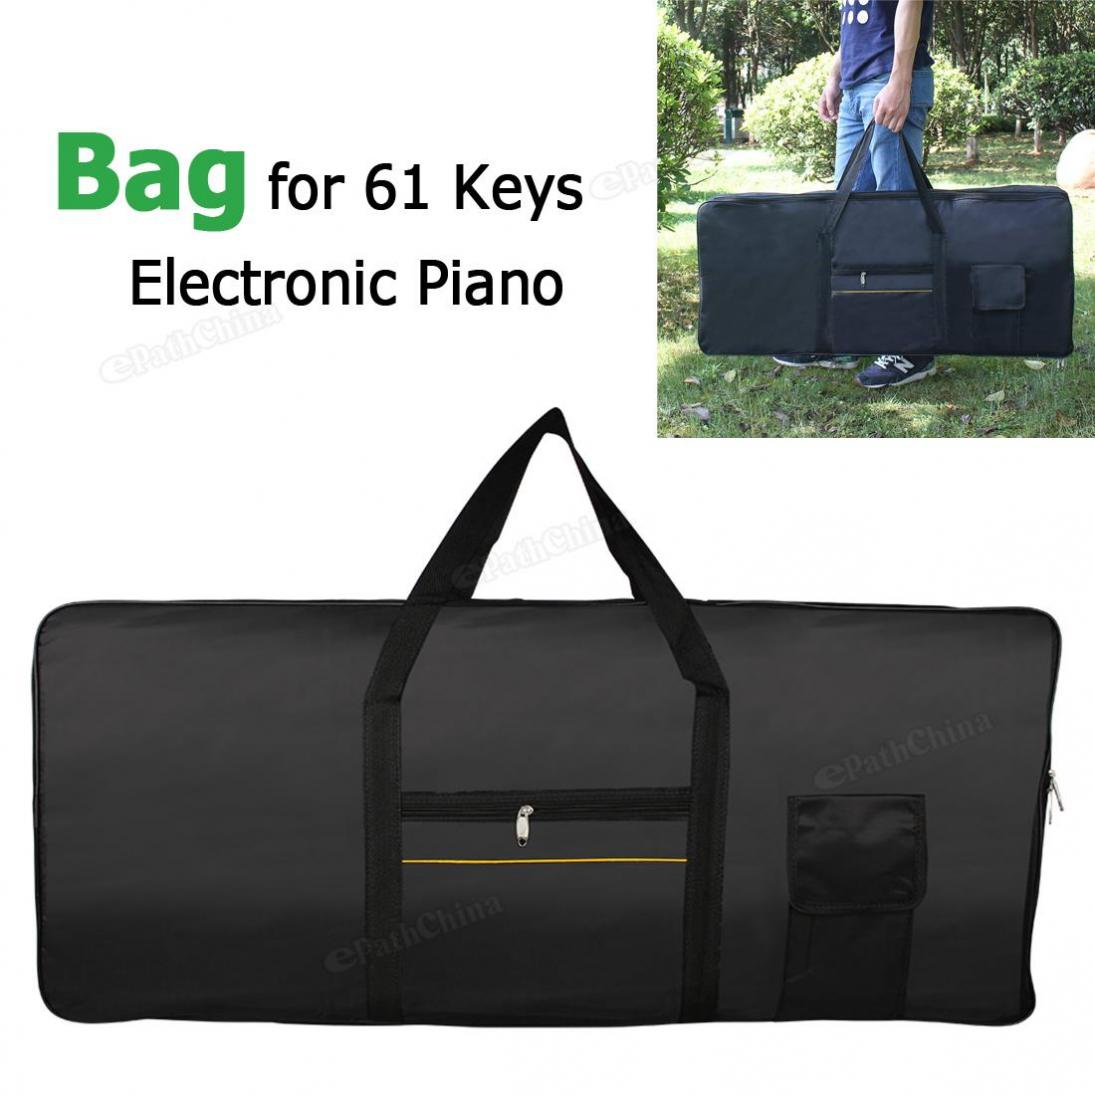 Waterproof Black Electronic Organ Oxford Fabric Portable Bag 100cm*40cm*16cm for 61 Keyboards Piano